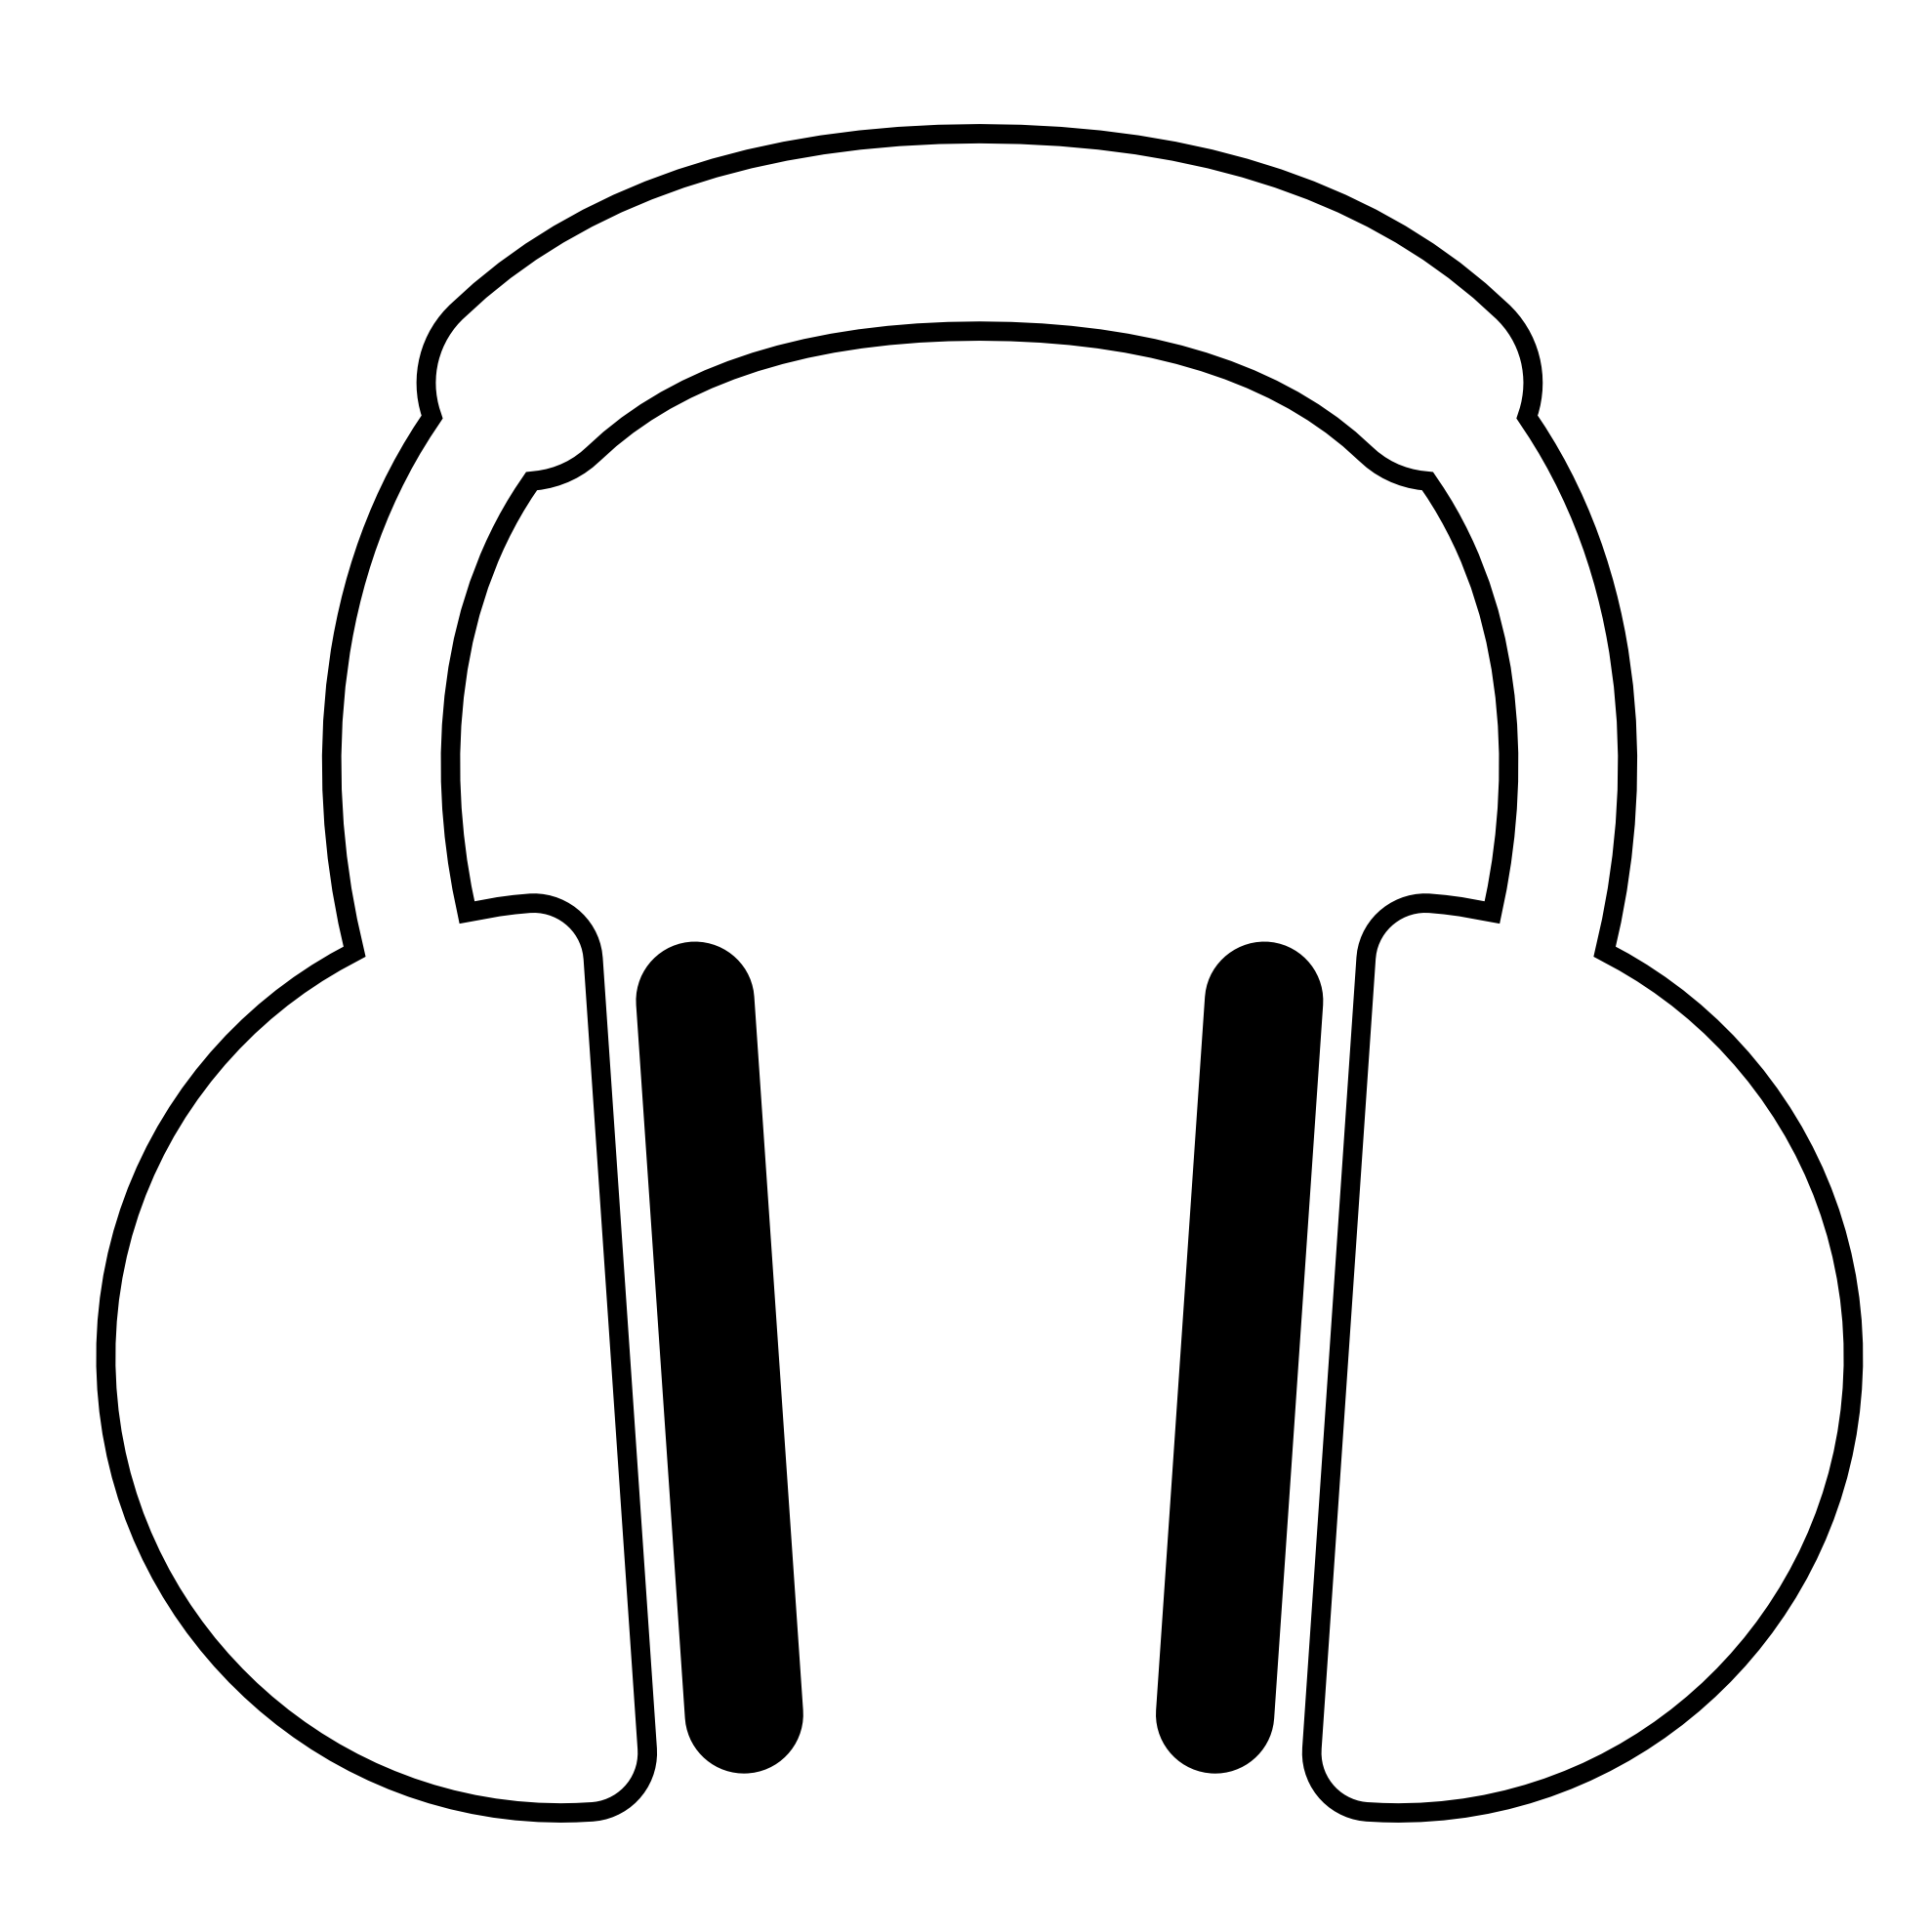 Listening To Music Clipart Black And White | Clipart library - Free